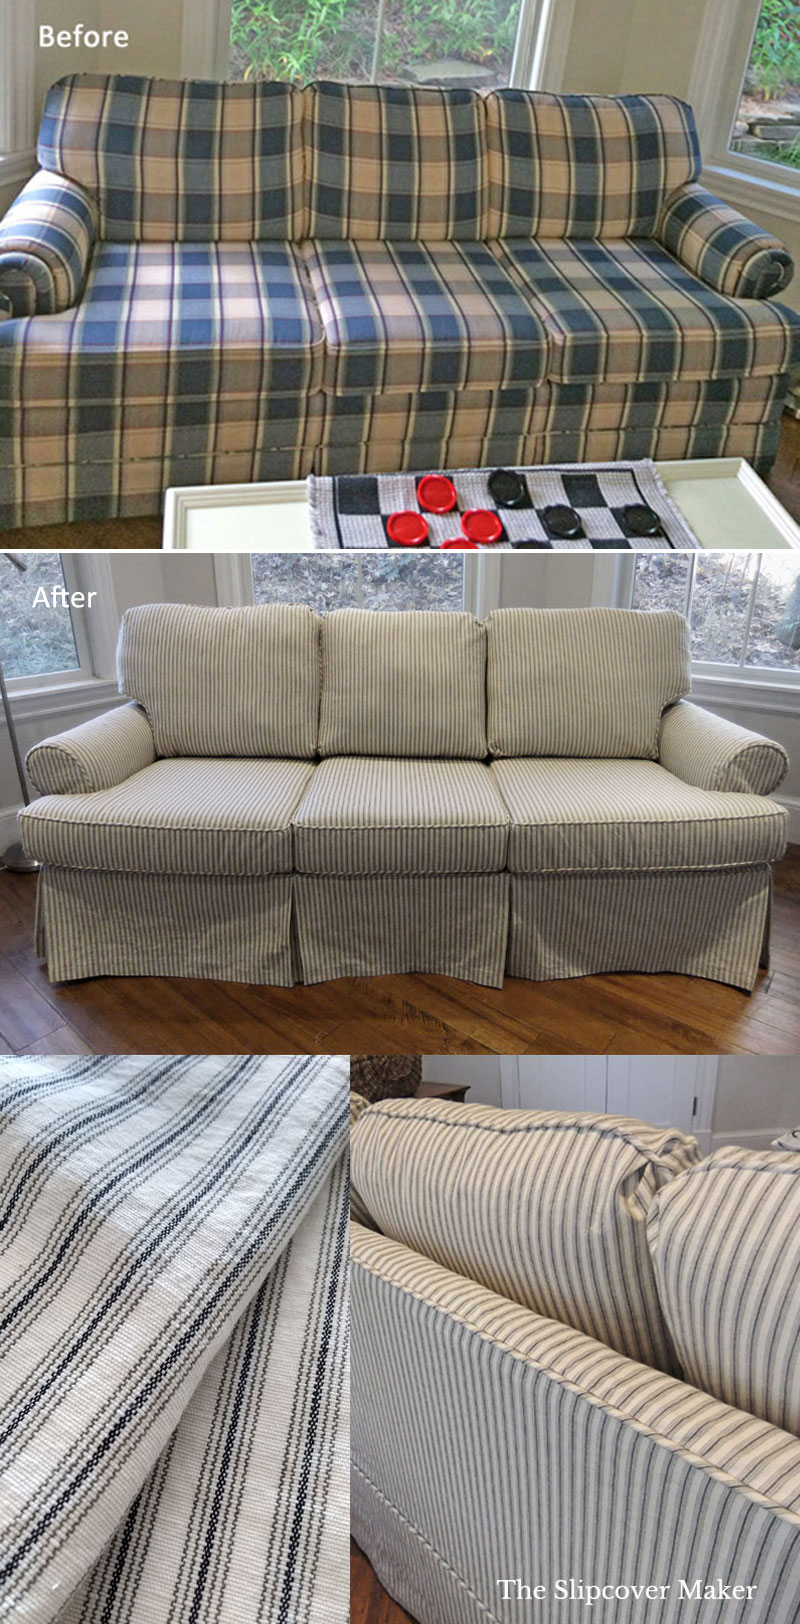 - 3 Slipcover Design Tips For Updating Your Old Sleeper Sofa The